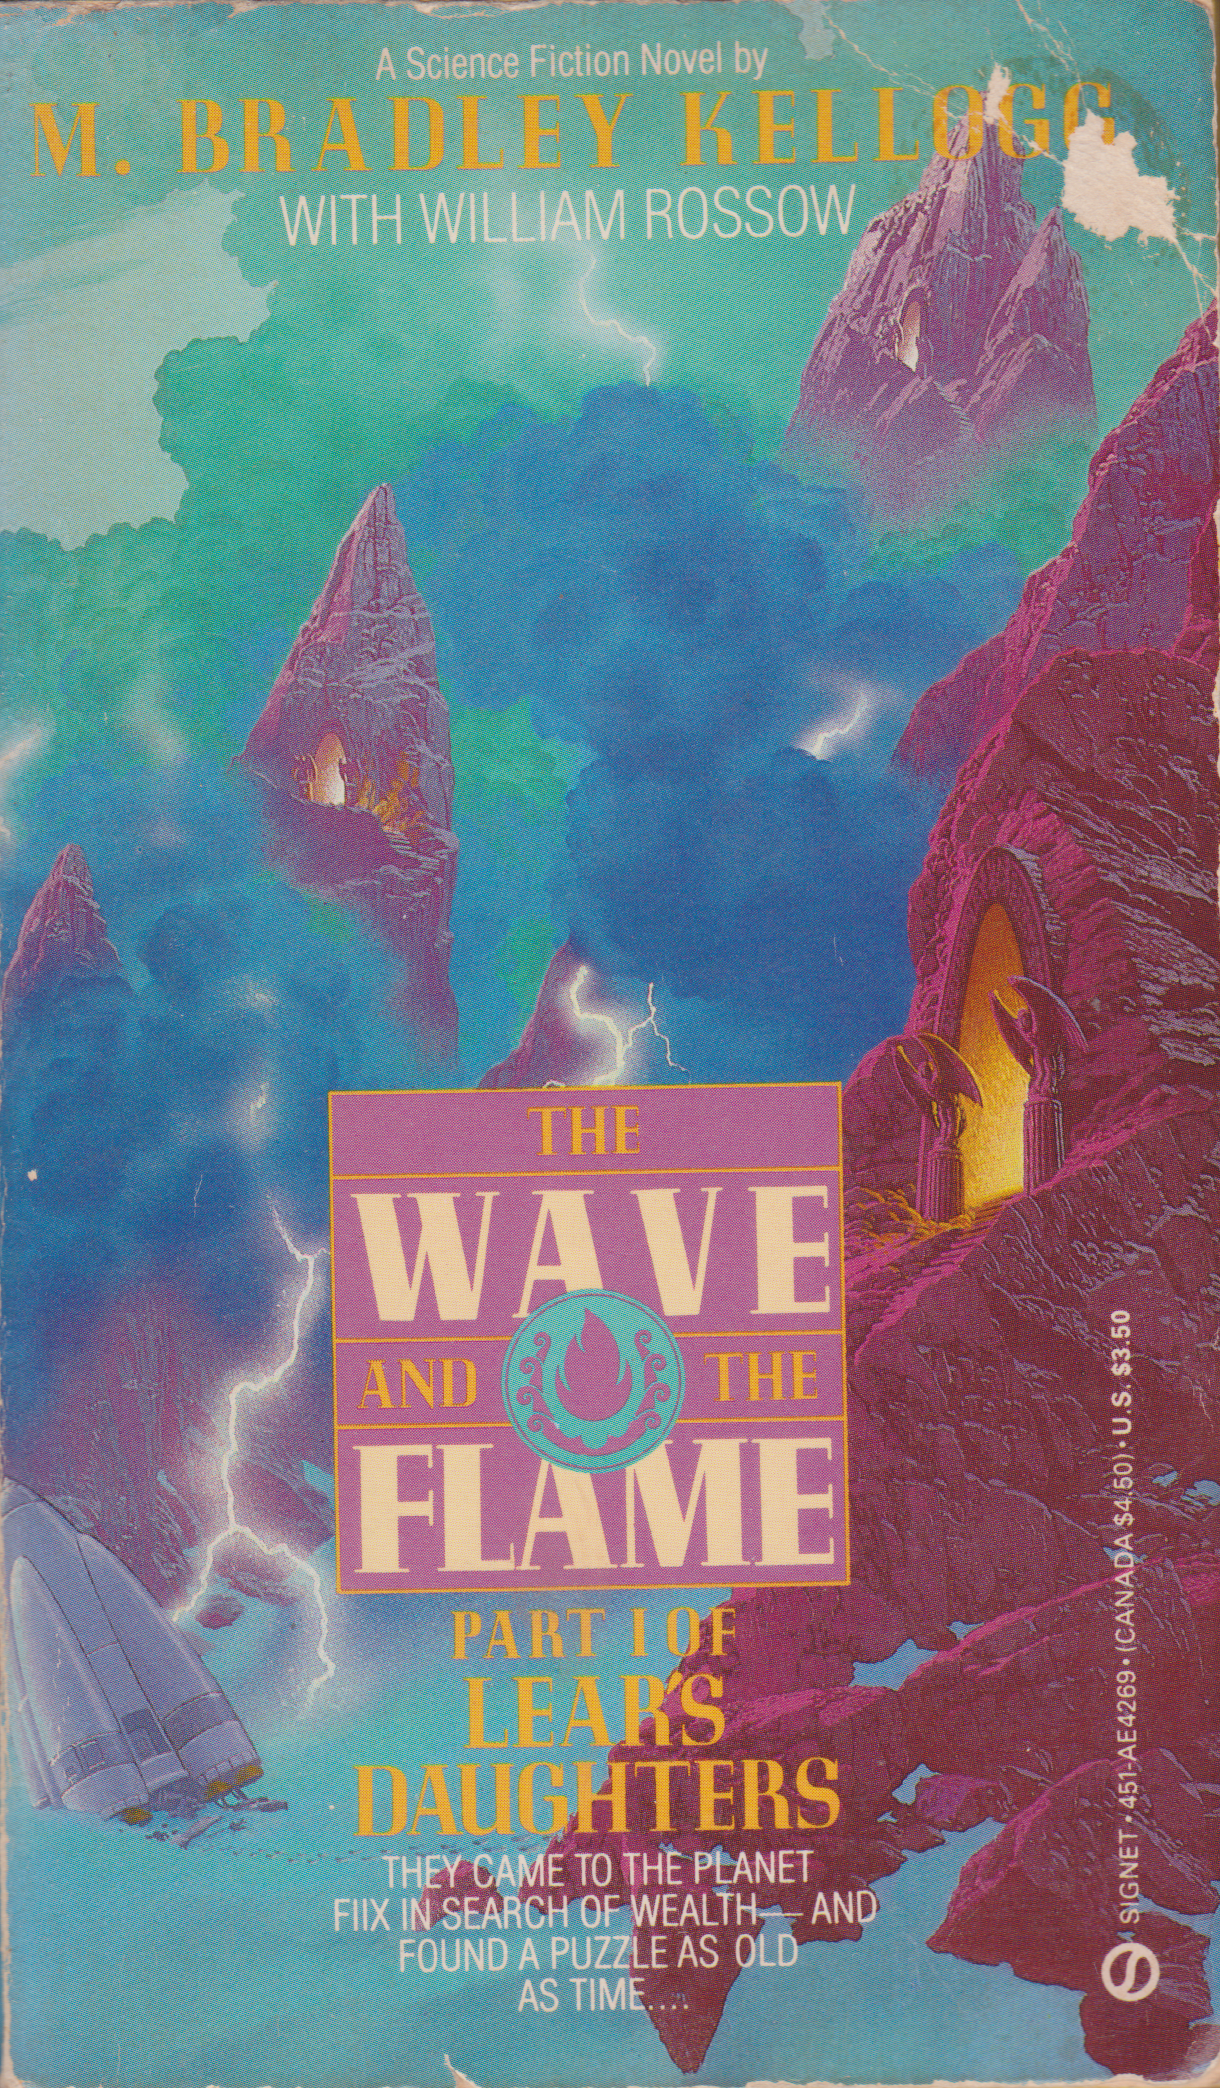 The Wave and the Flood by M Bradley Kellogg-front.png